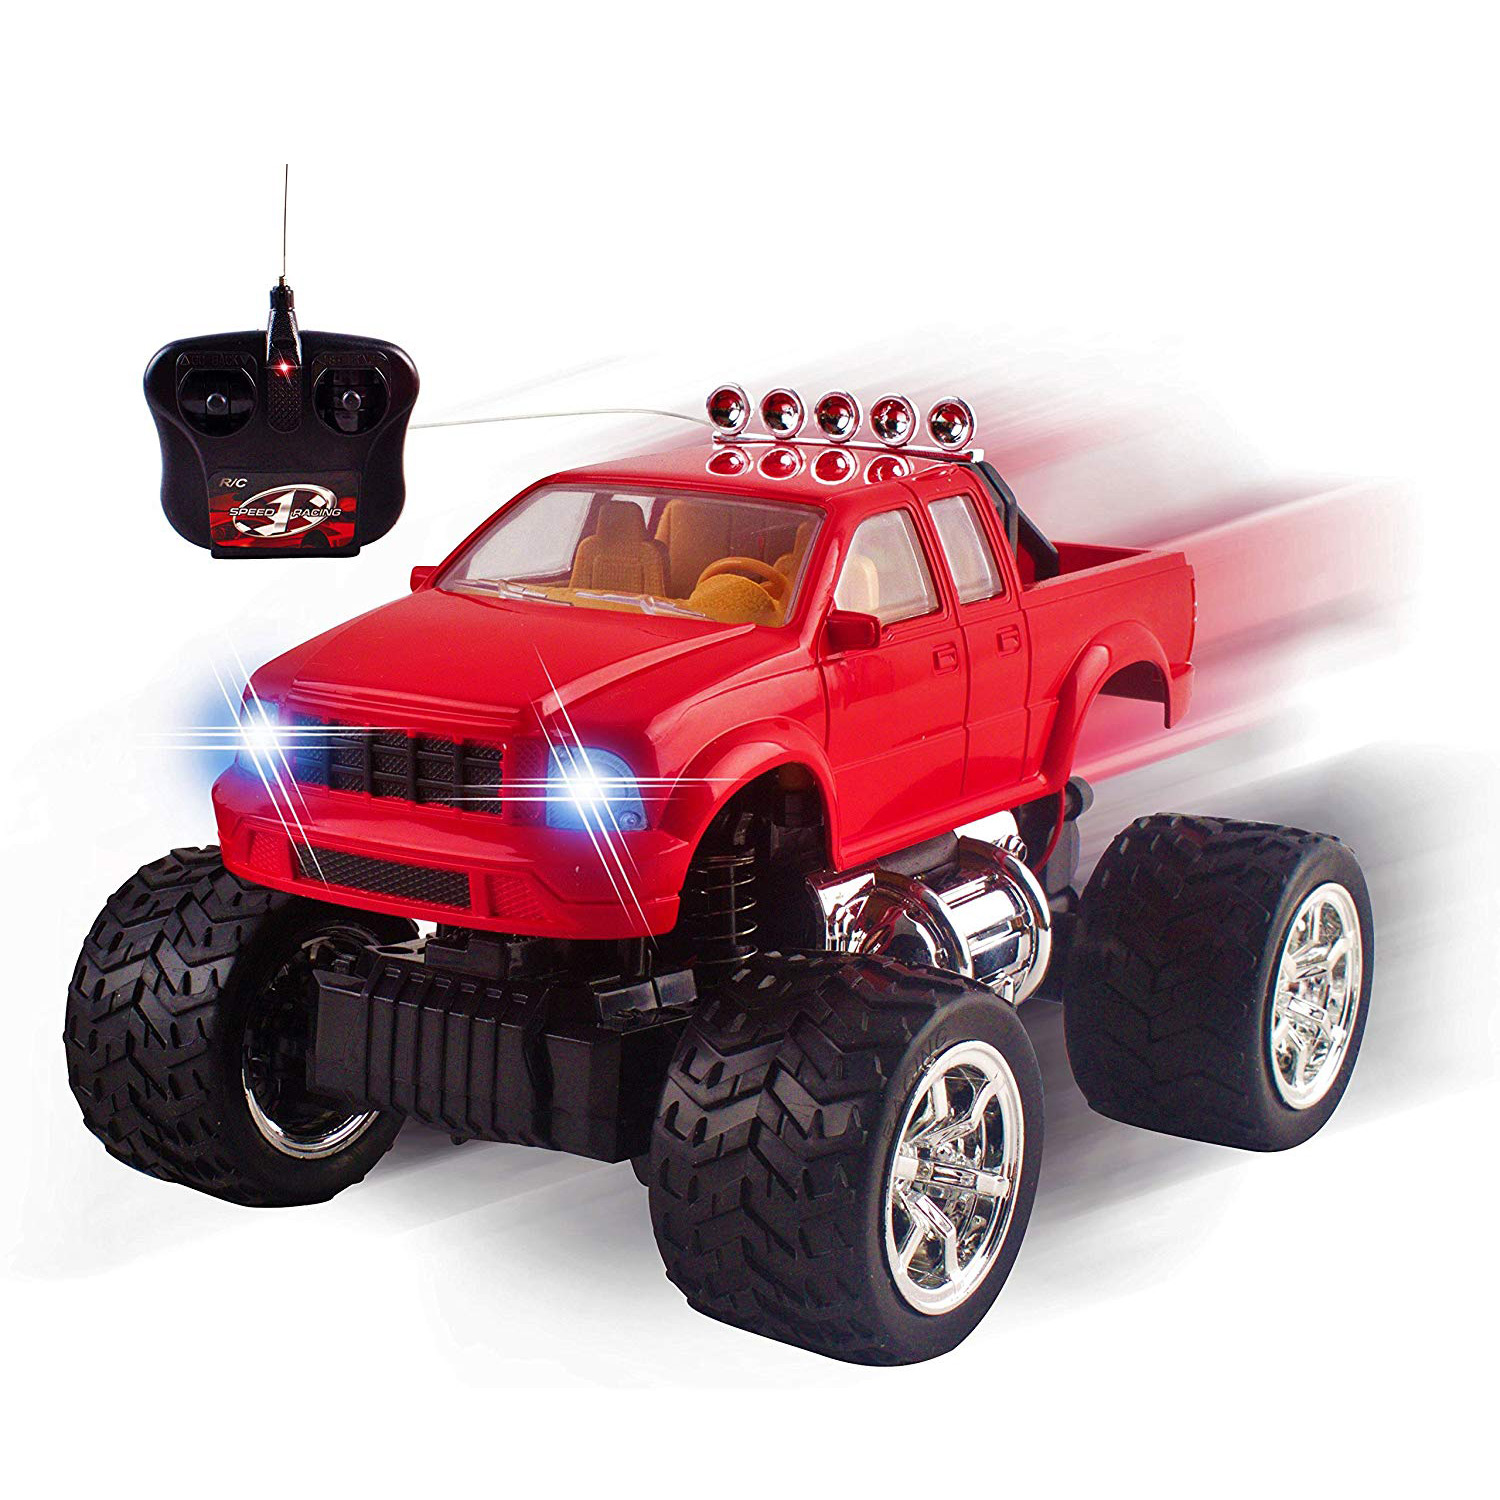 RC Truck Off-Road Series 1:20 Mini Scale Big Wheel Remote Control Car With LED Headlights Ready to Run Fast Nimble Handling Monster Trucks Beast Buggy Toy (Red)